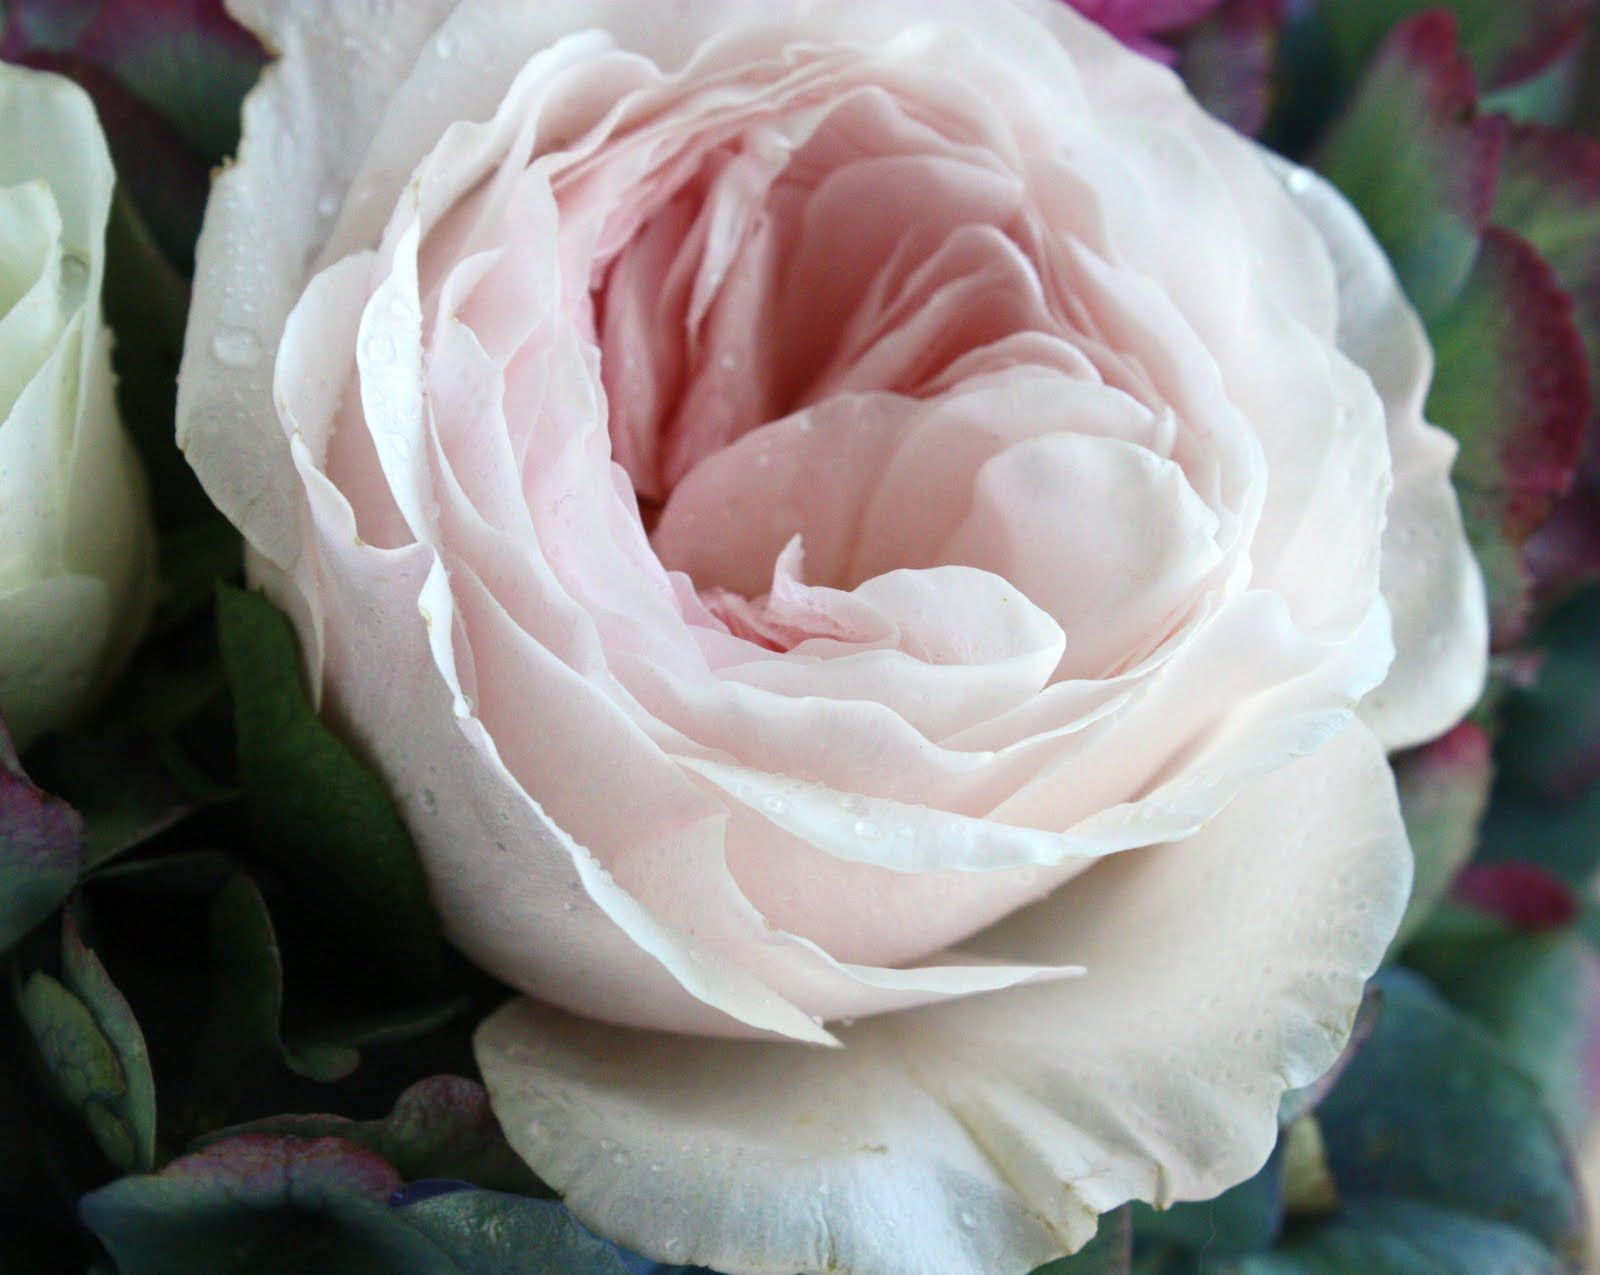 Well this is the official flower of the wedding Blush pink garden